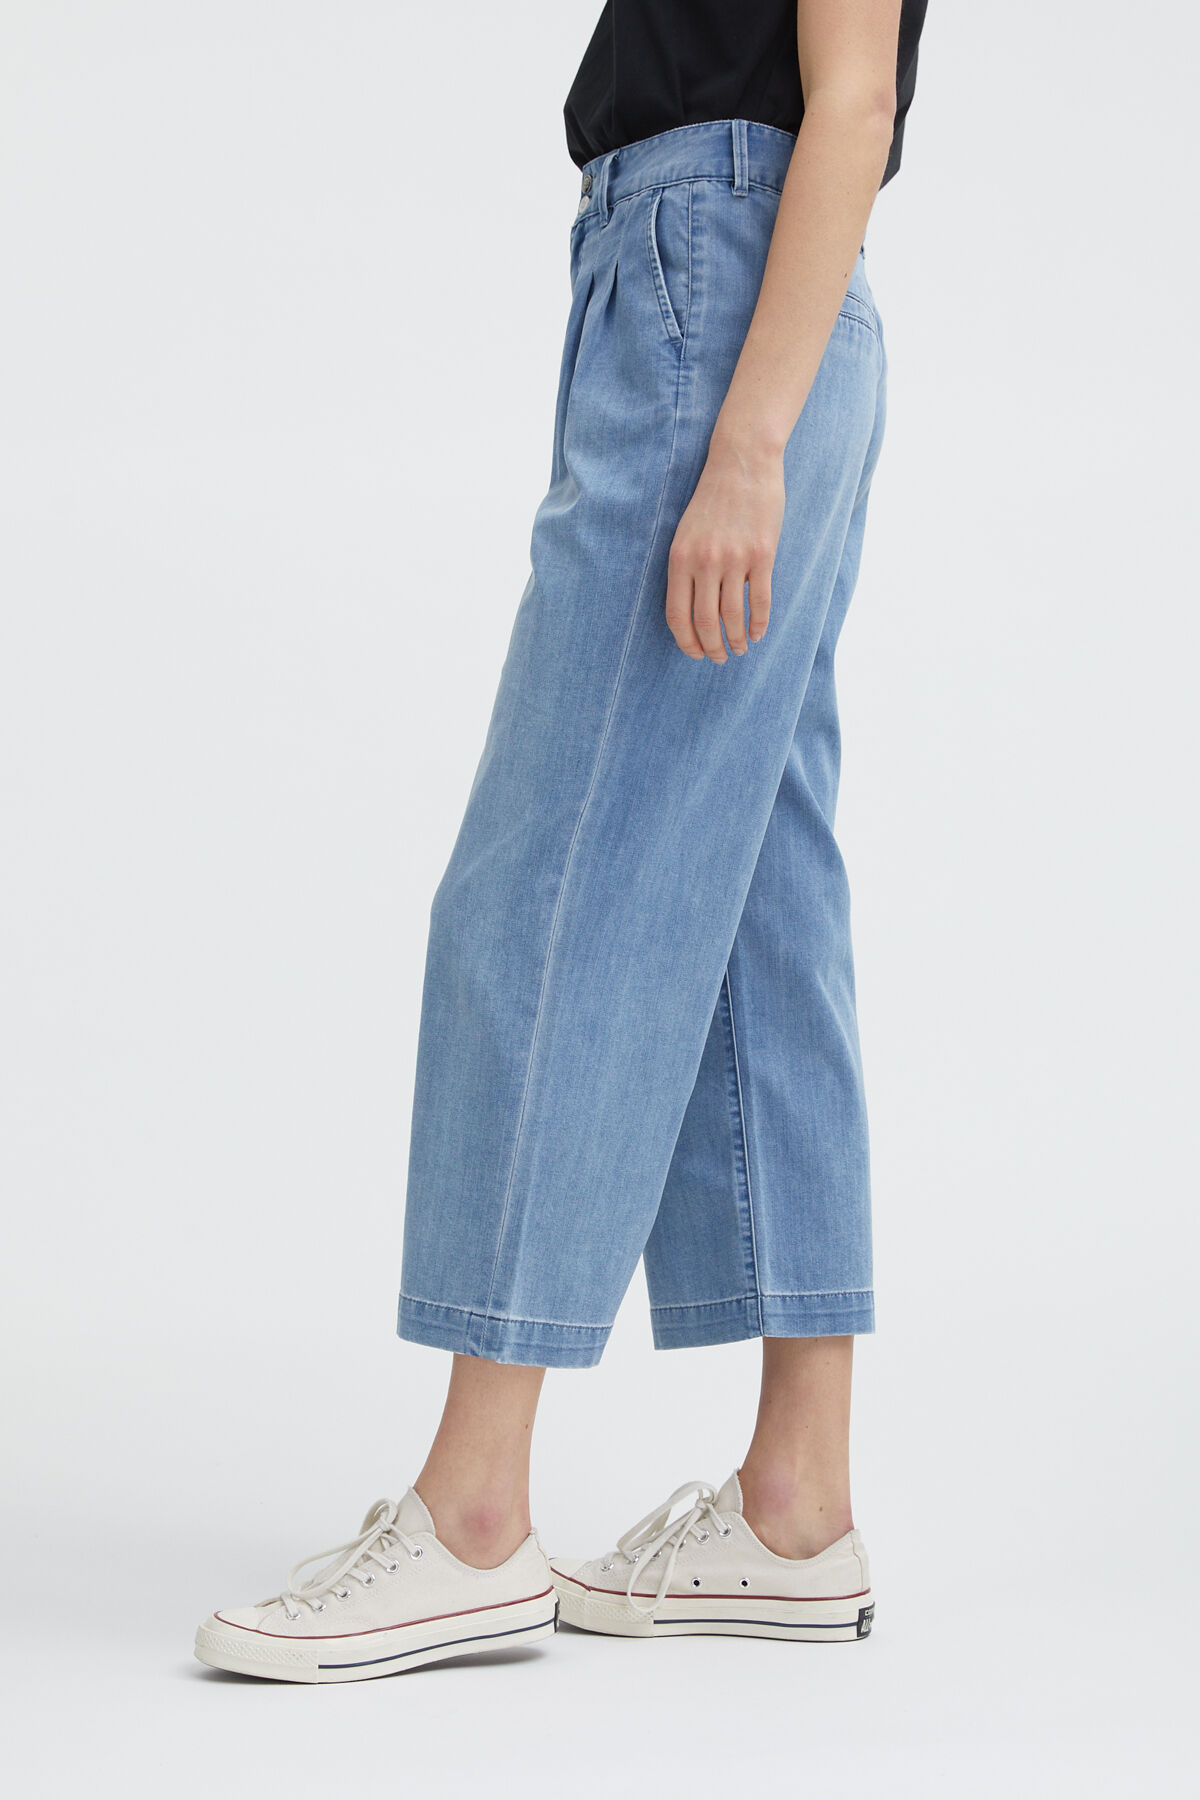 SOPHIA Cotton & Tencel Blend Denim Pants - Wide-leg